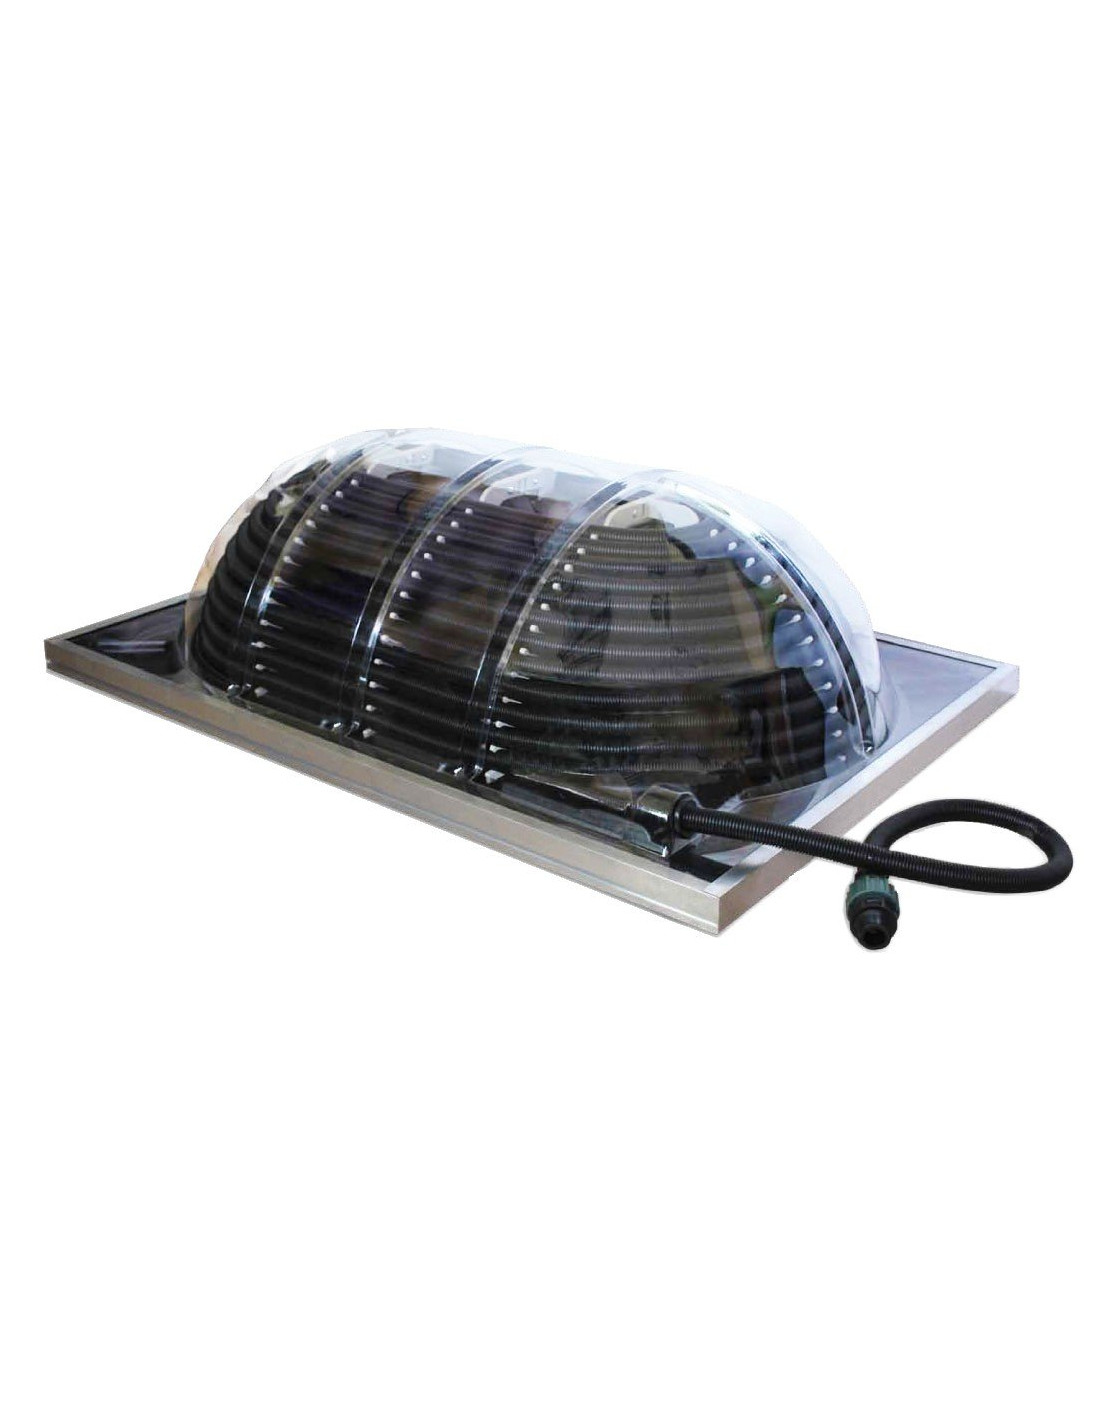 Dome solaire piscine hors sol 20 m3 for Piscine hors sol chauffage solaire